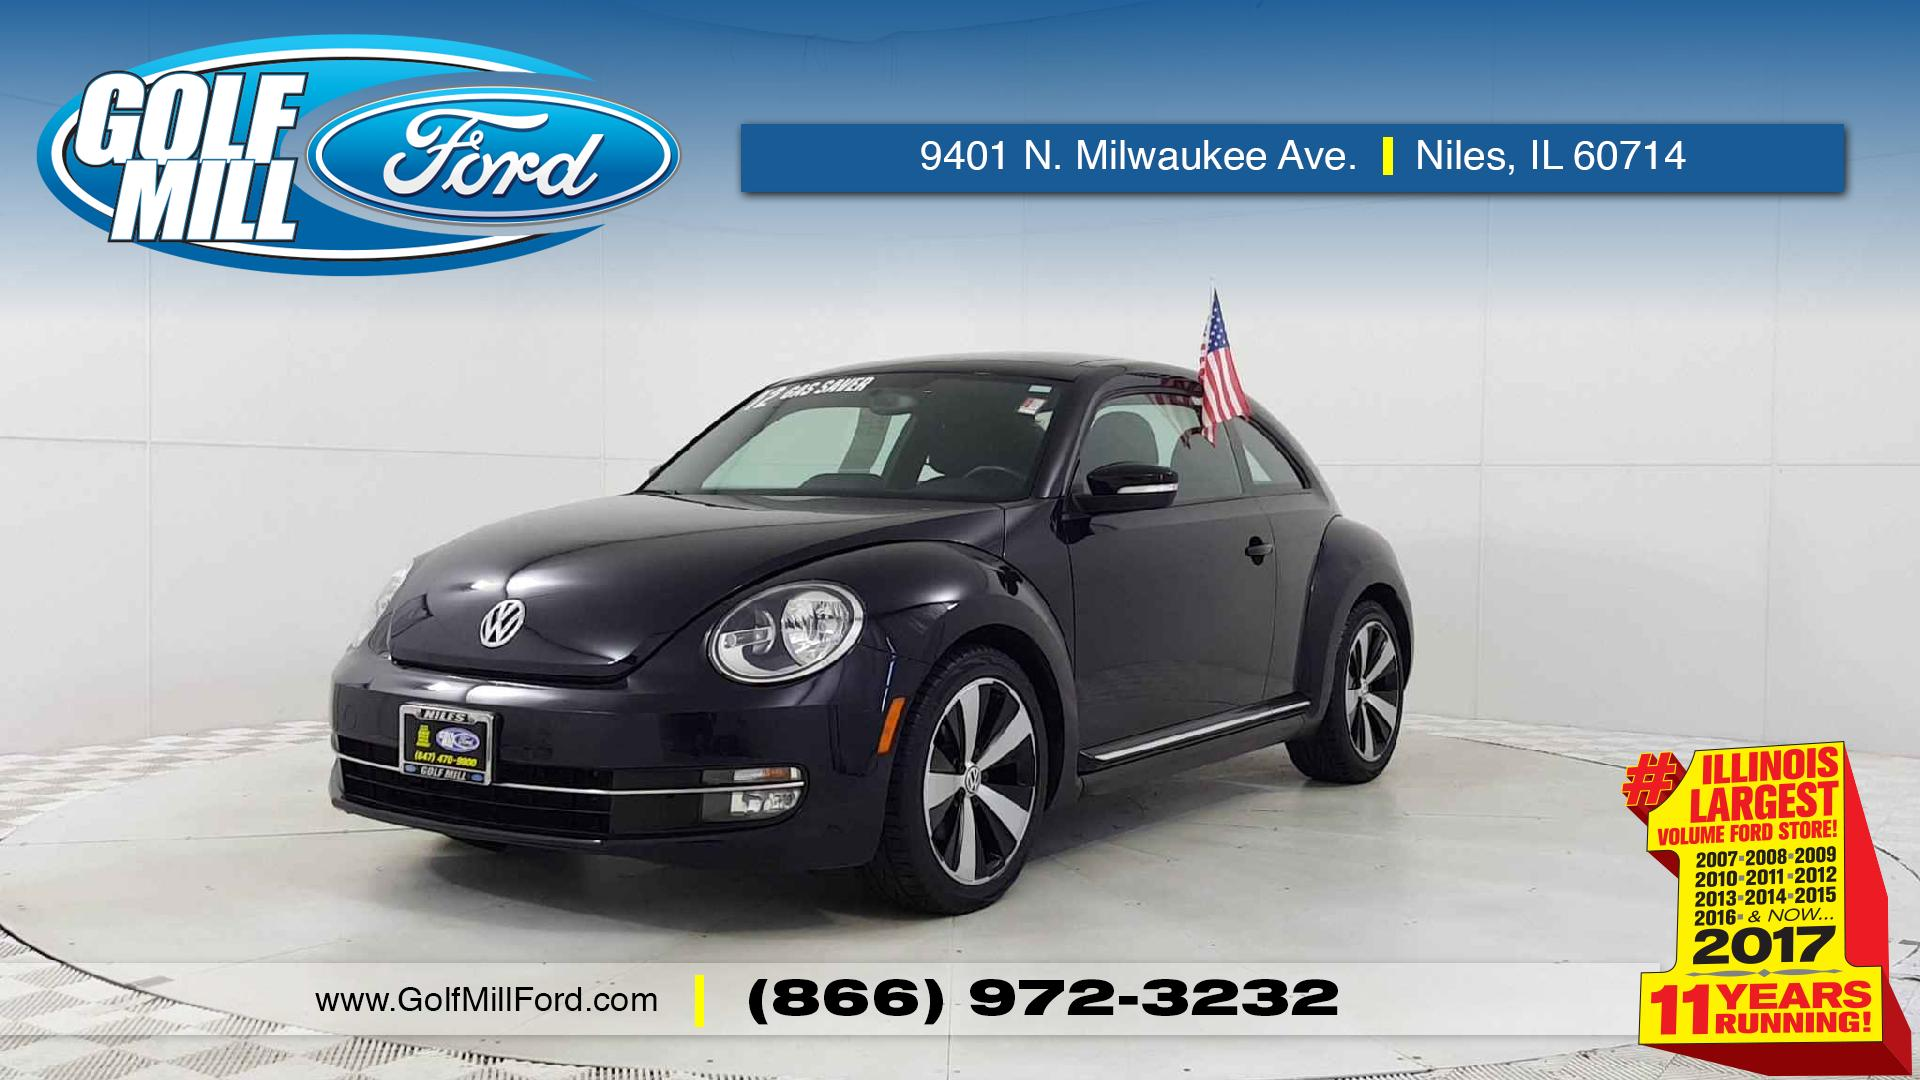 Illinois Used Car Sales Tax Unique Used Vehicles Between $1 001 and $10 000 for Sale In Niles Il